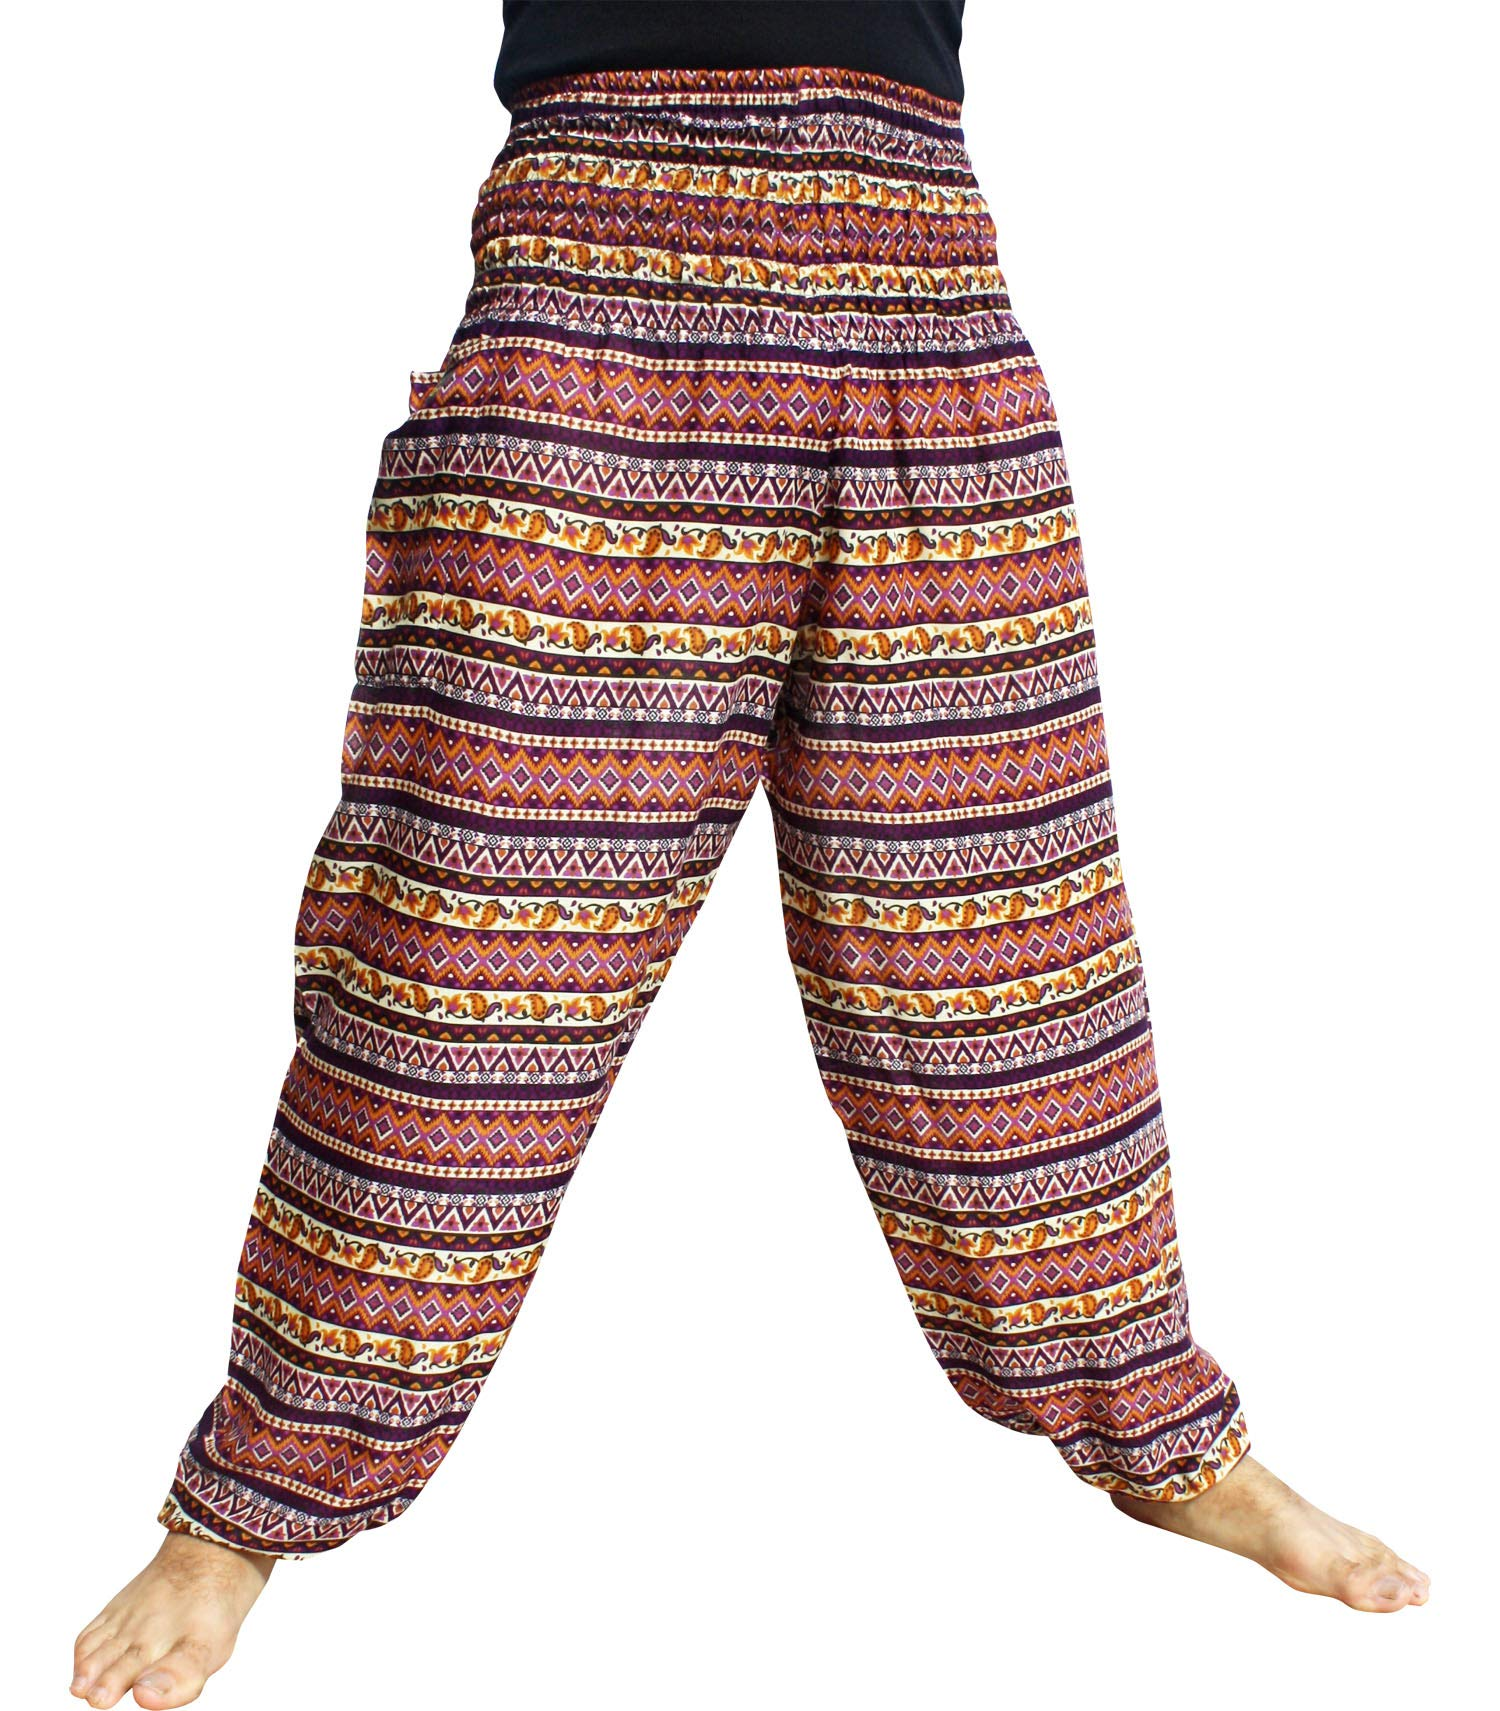 RaanPahMuang Brand Smock Waist Rayon Mixed Art Harem Baggy Aladdin Pants, Large, Zigzag Art - Purple by RaanPahMuang